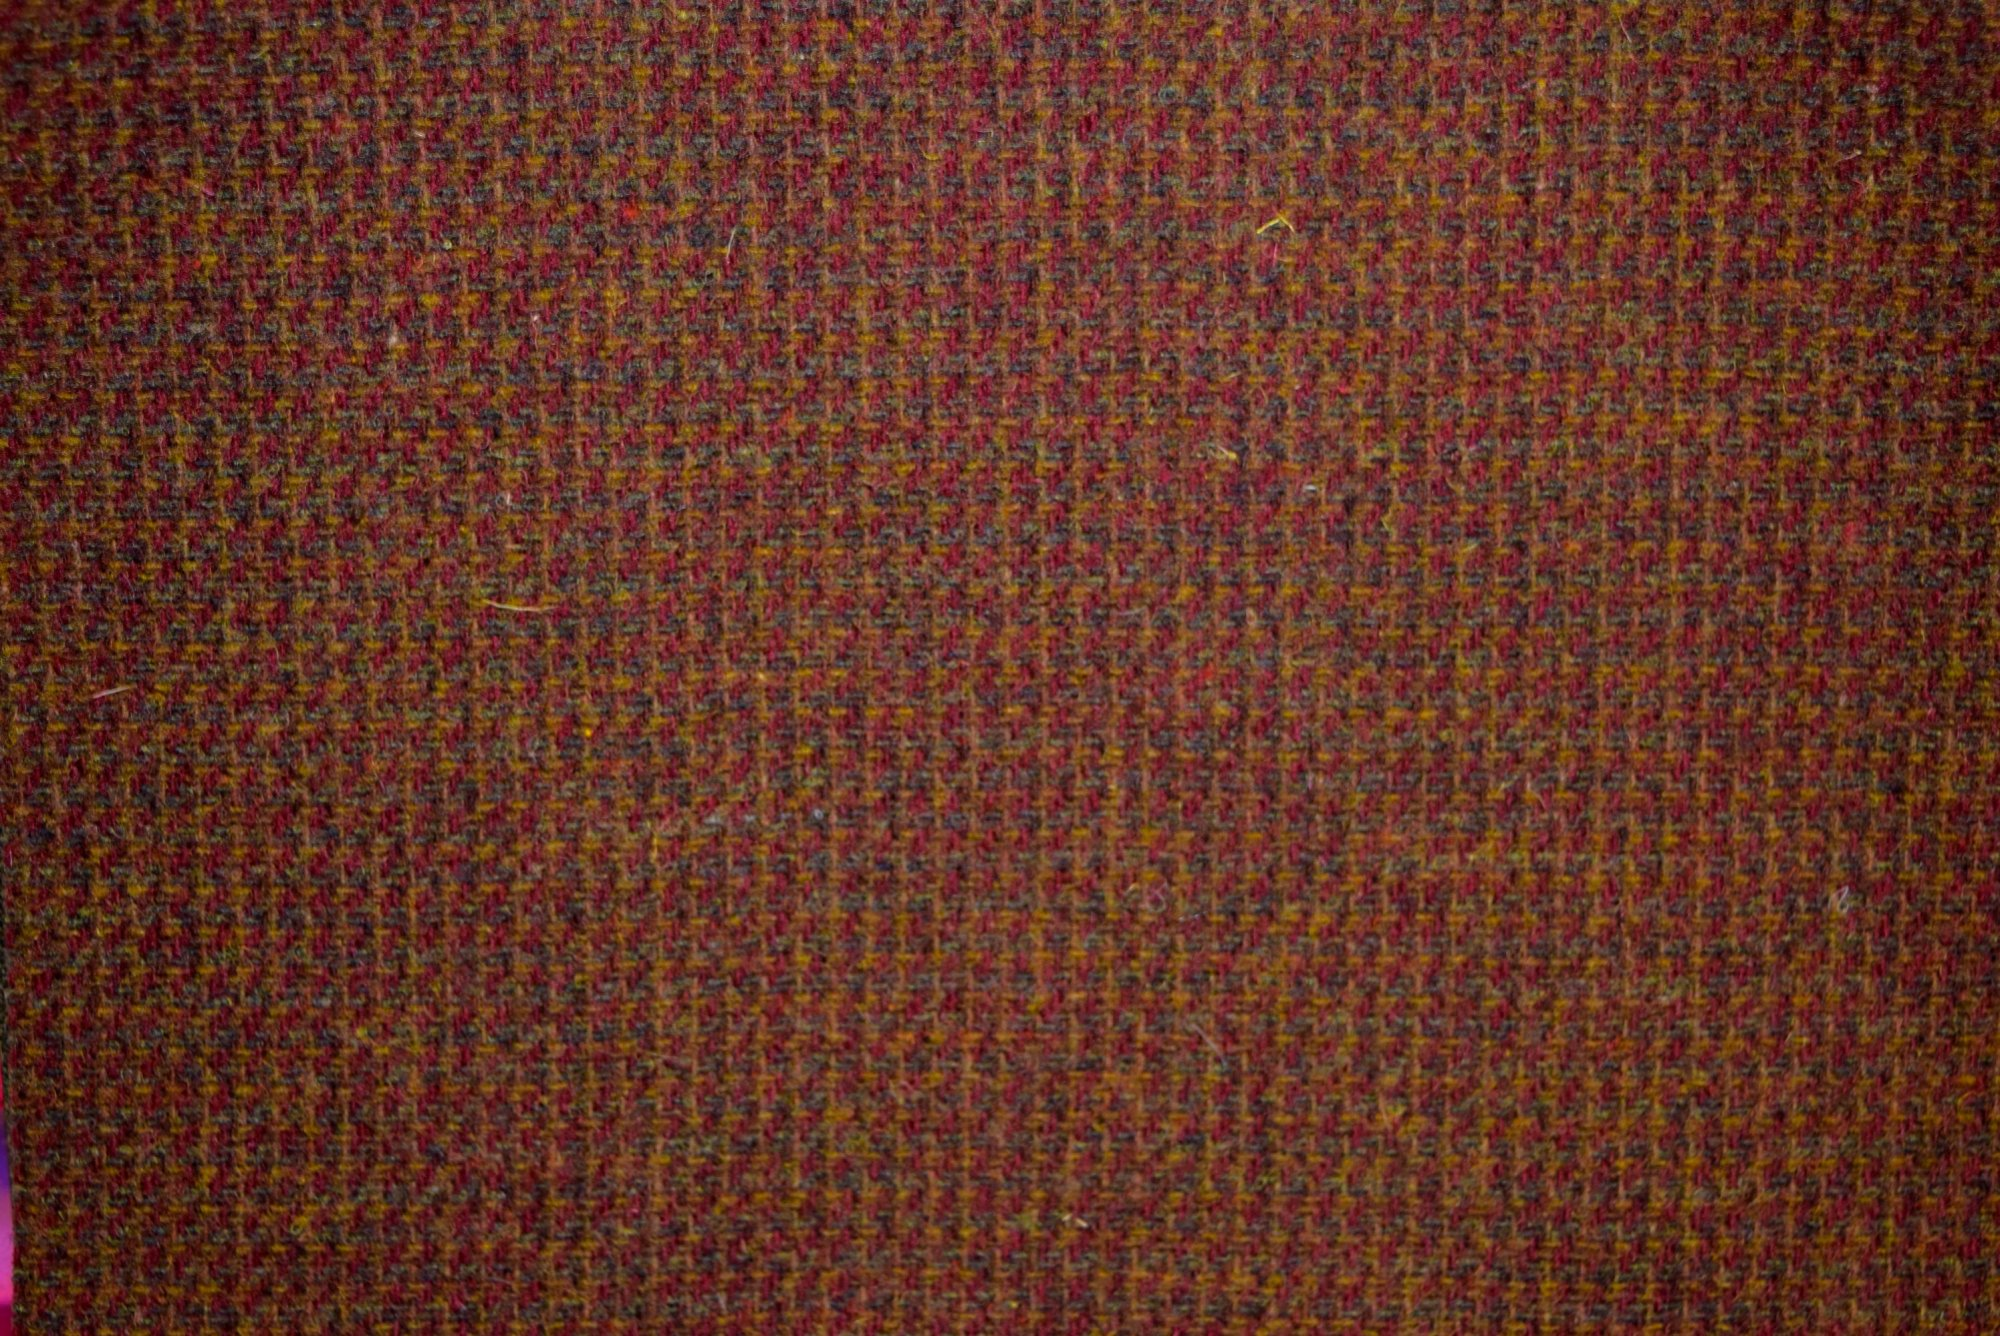 Chili Pepper 9 X 14 100% Wool